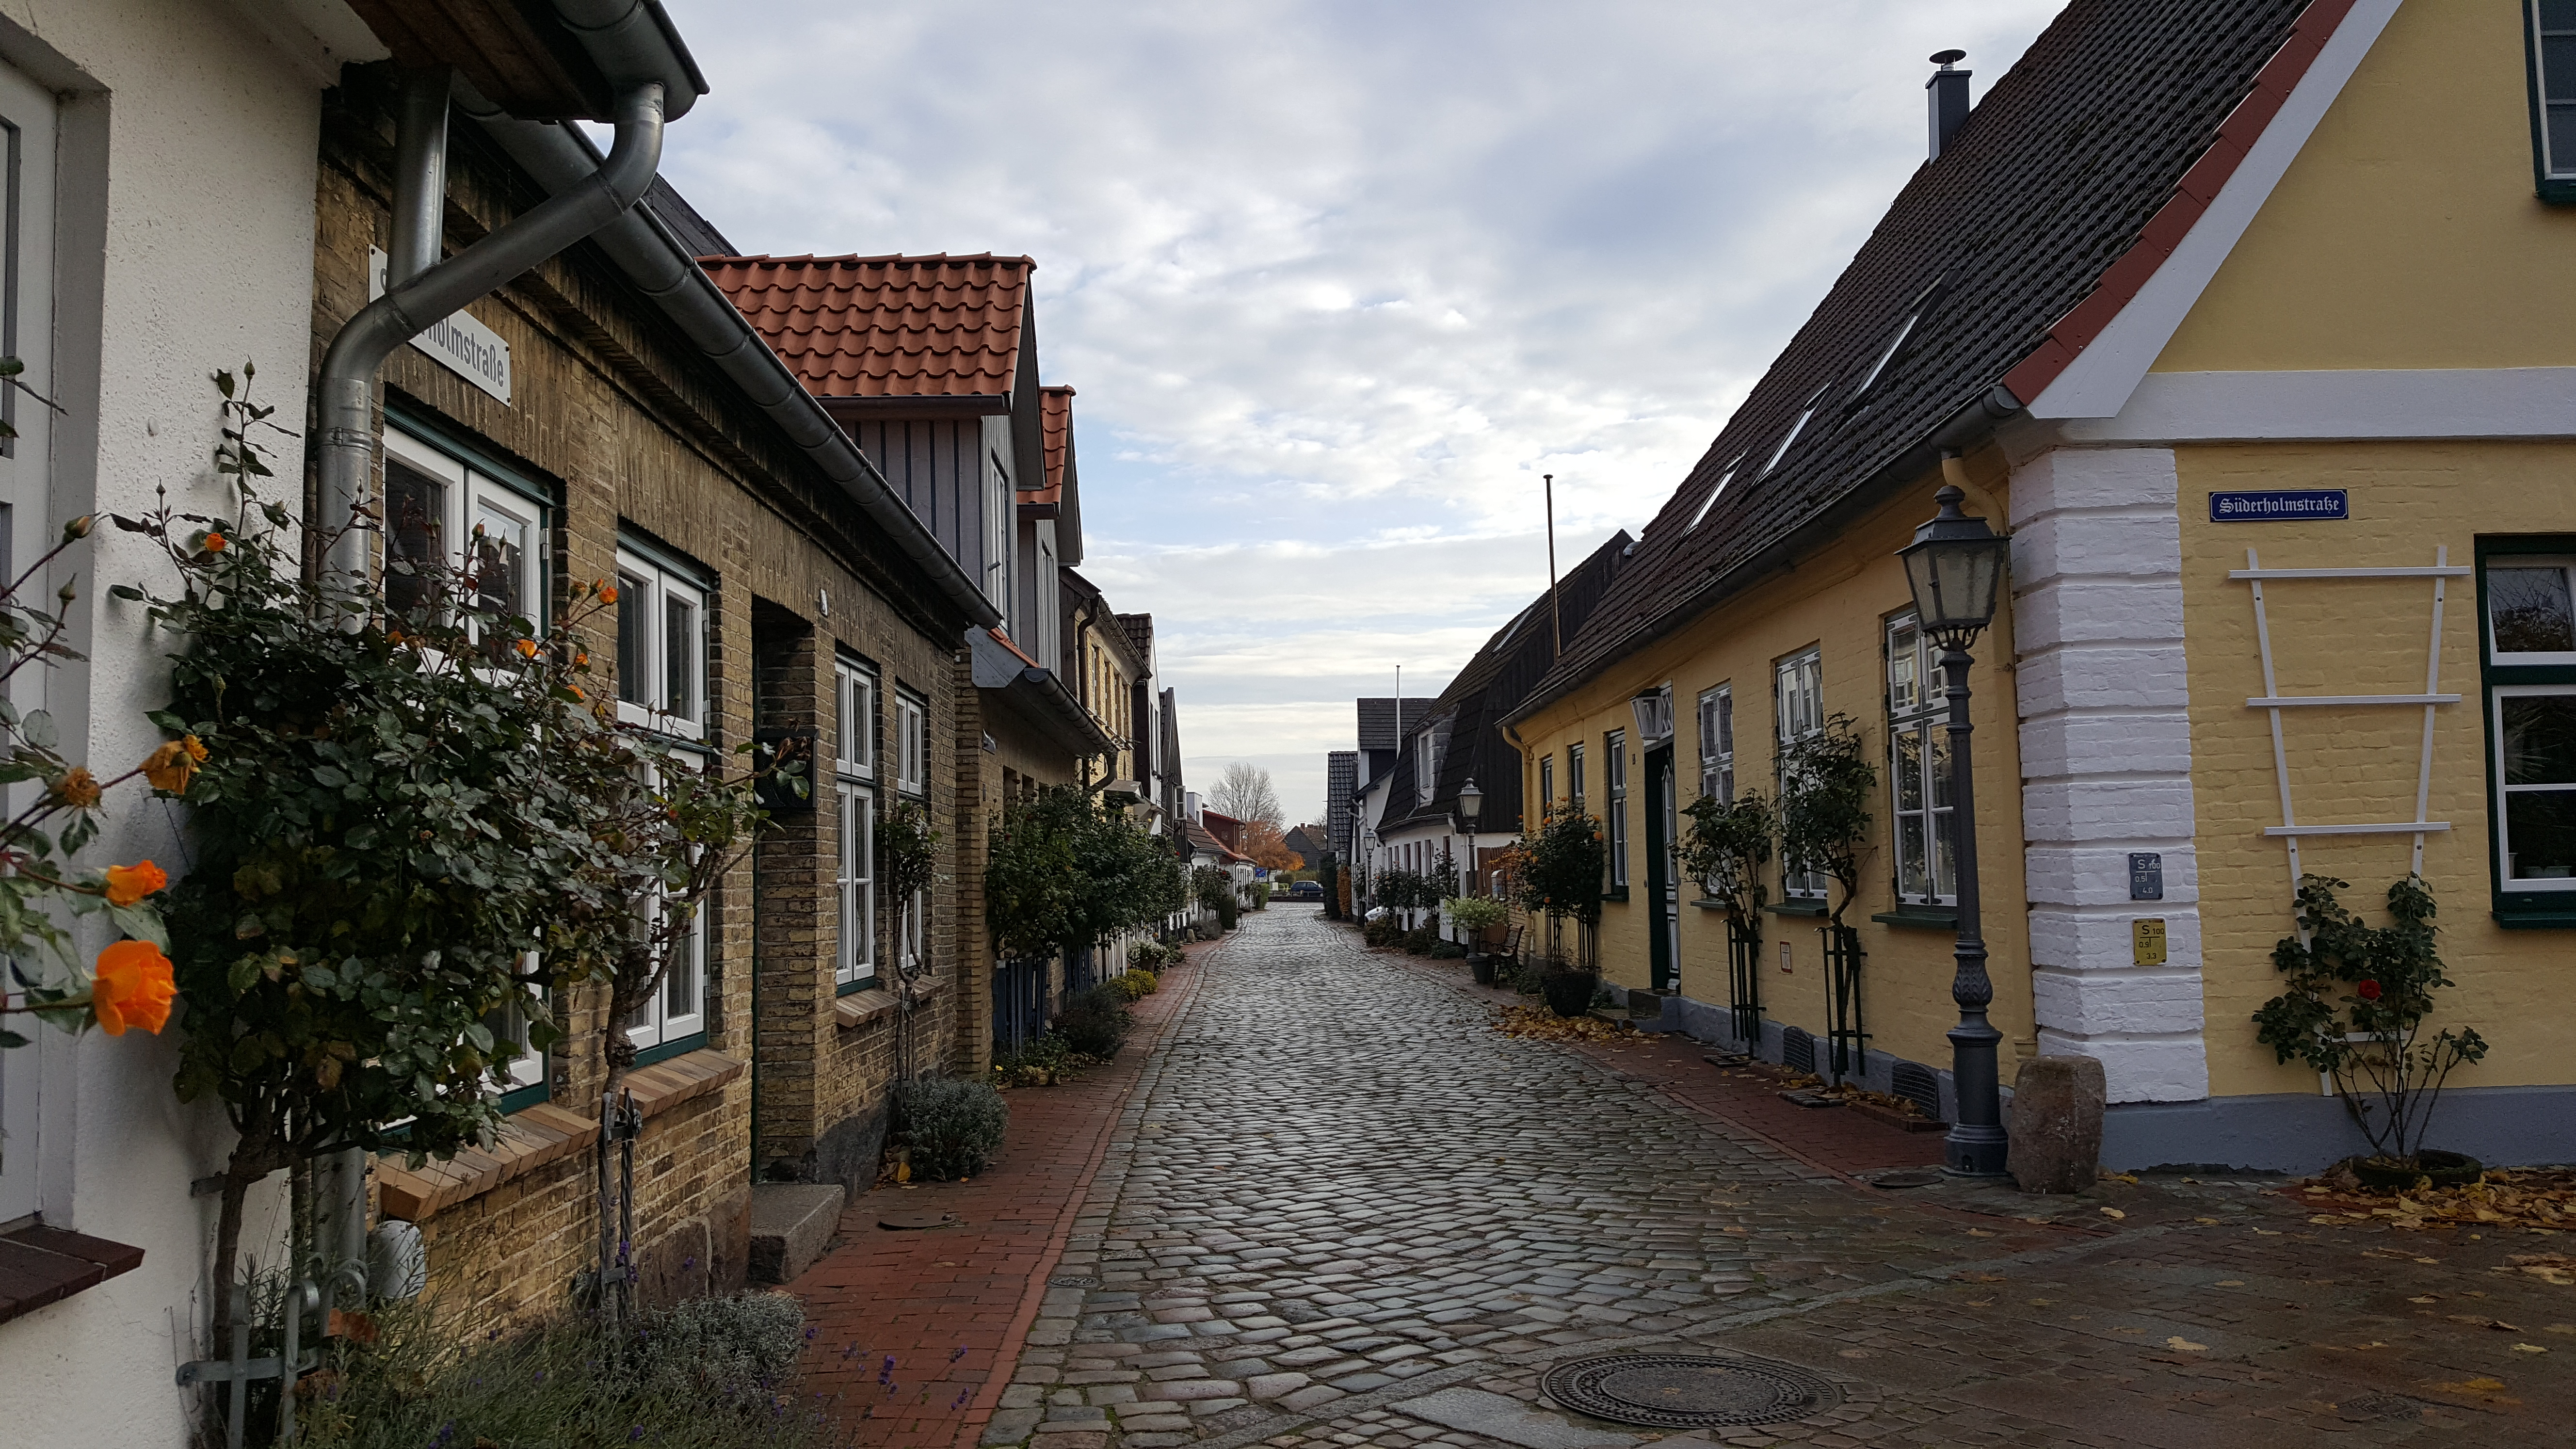 A lane in Holm. Notice the rose bushes trained against the houses. Photo by Dragonfly Leathrum